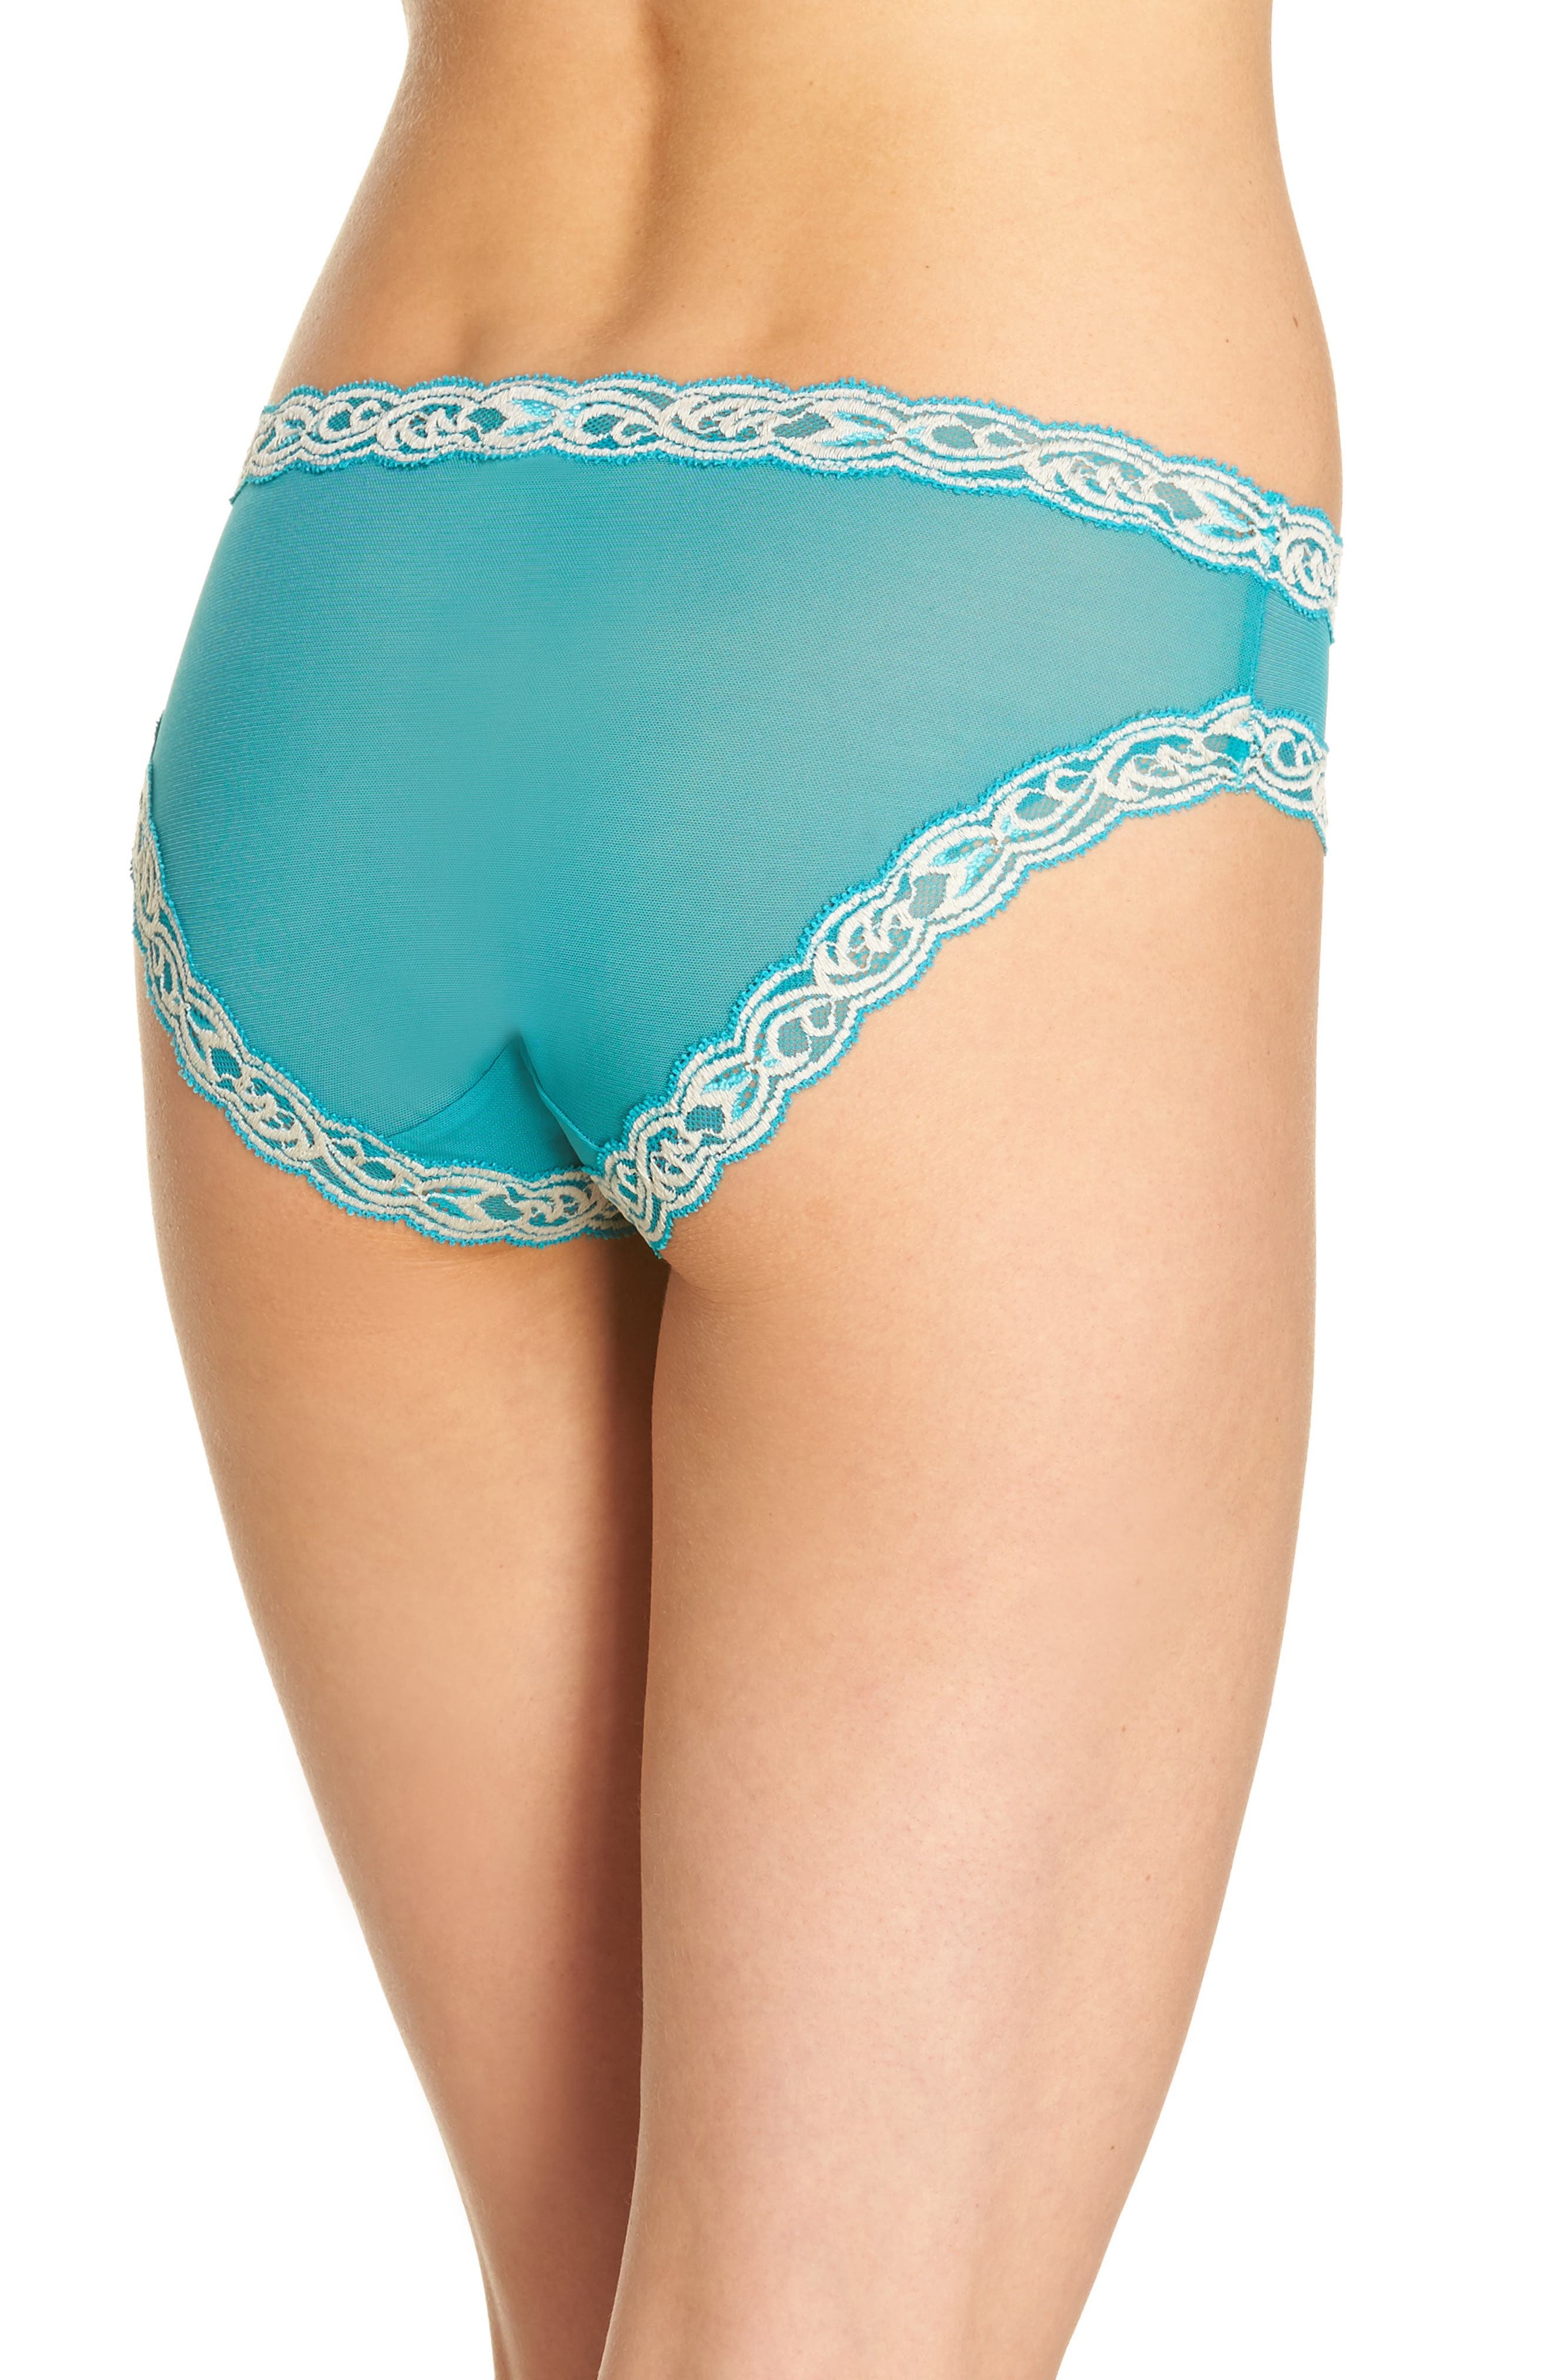 Feathers Hipster Briefs,                             Alternate thumbnail 177, color,